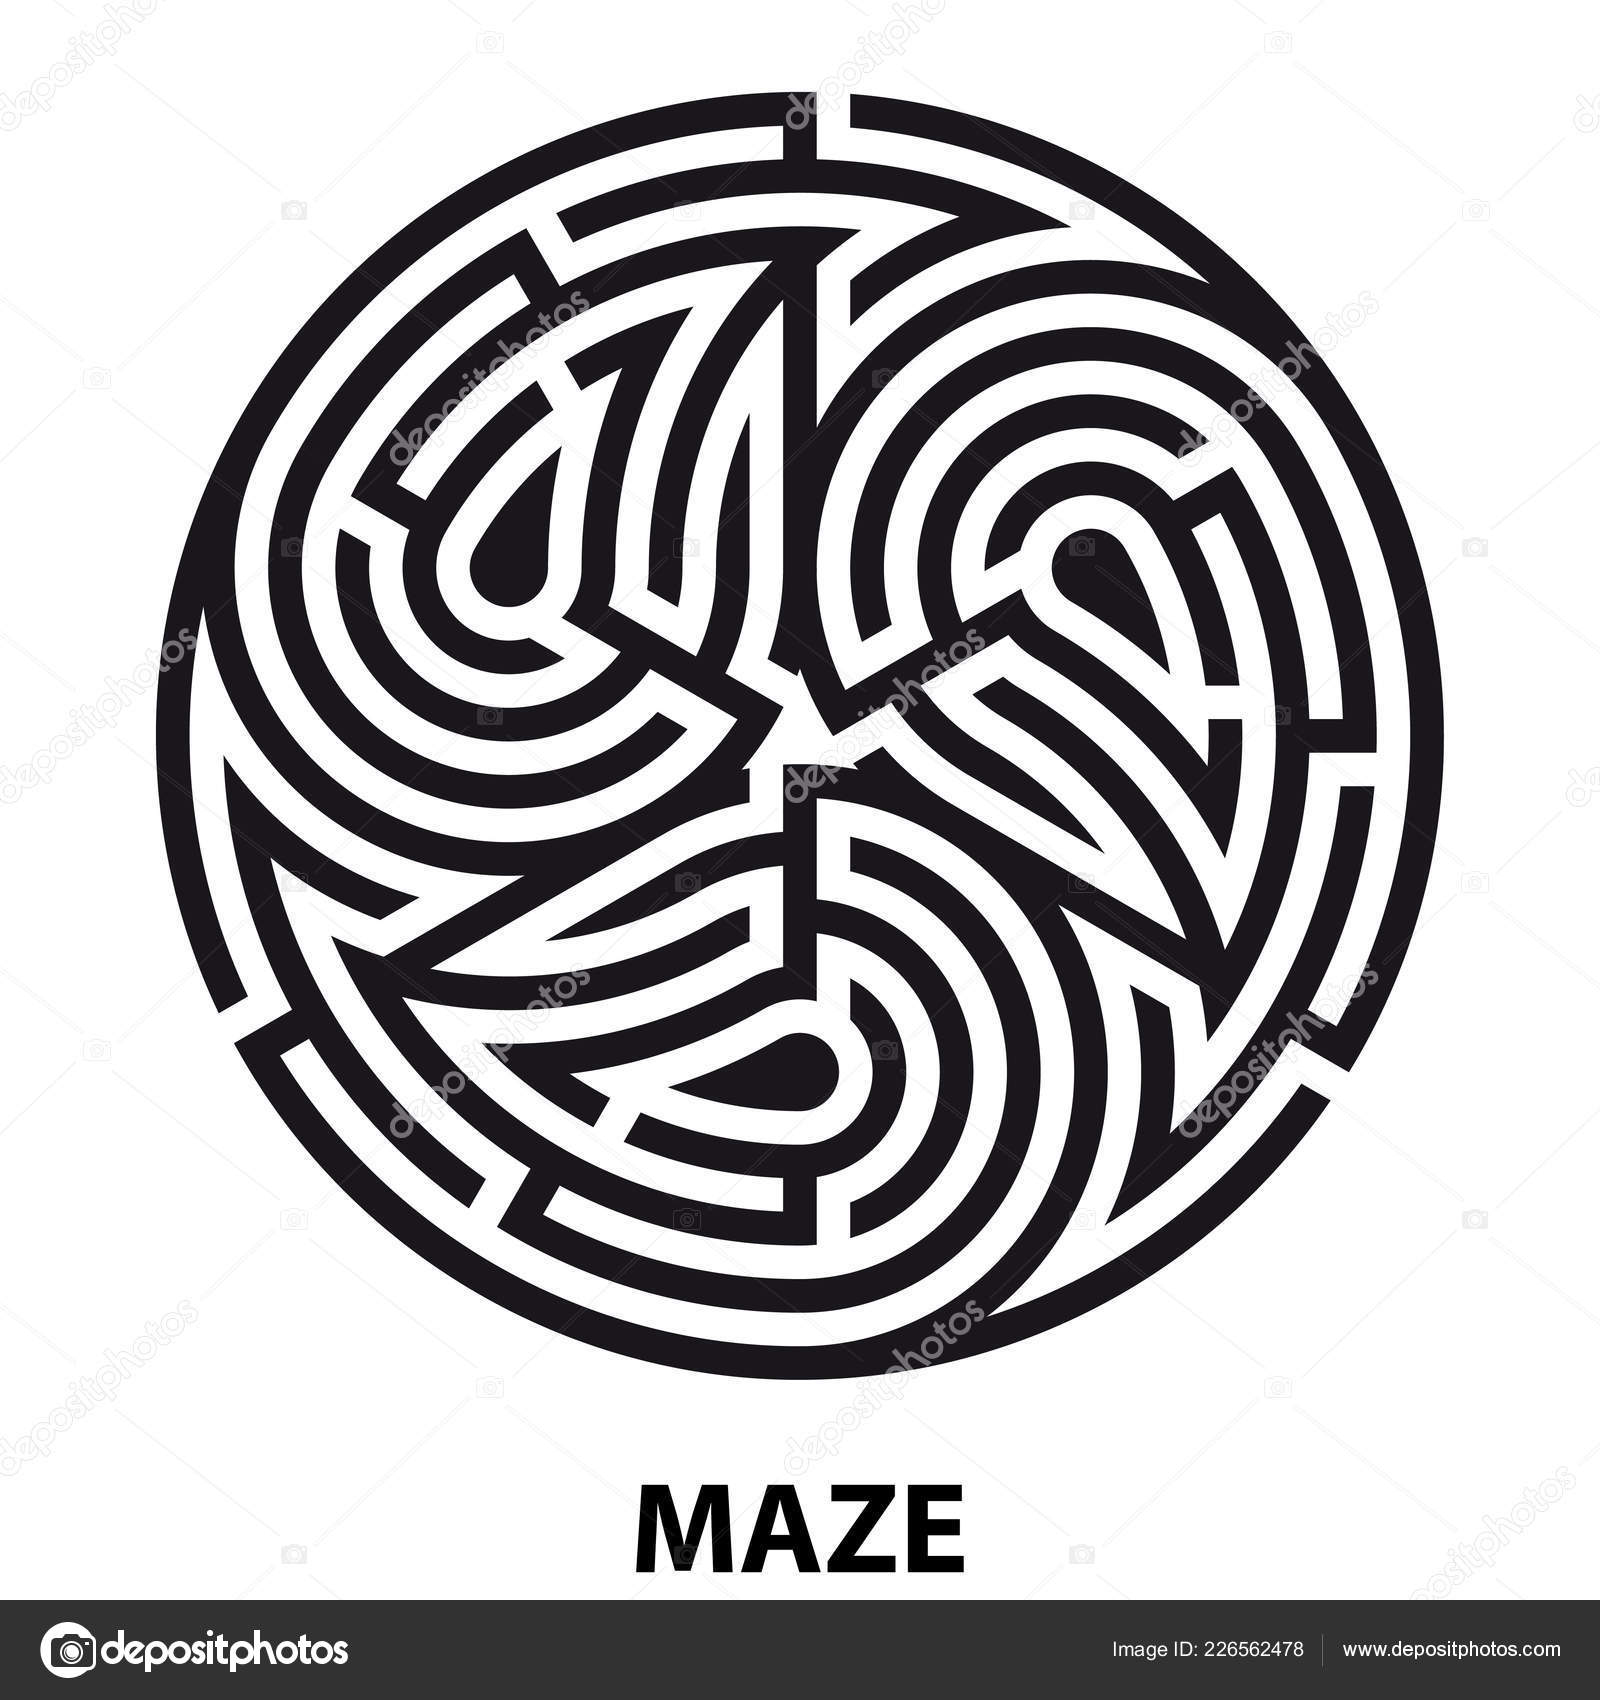 Depositphotos Stock Illustration Triskelion Symbol Tattoo Maze Geometric furthermore Sack Race Kids And Maze Black And White Download Royalty Free Vector File Eps likewise Animals Pattern additionally Depositphotos Stock Illustration Flat Icon Of American Football in addition Maze With Solution Download Royalty Free Vector File Eps. on file maze type standard